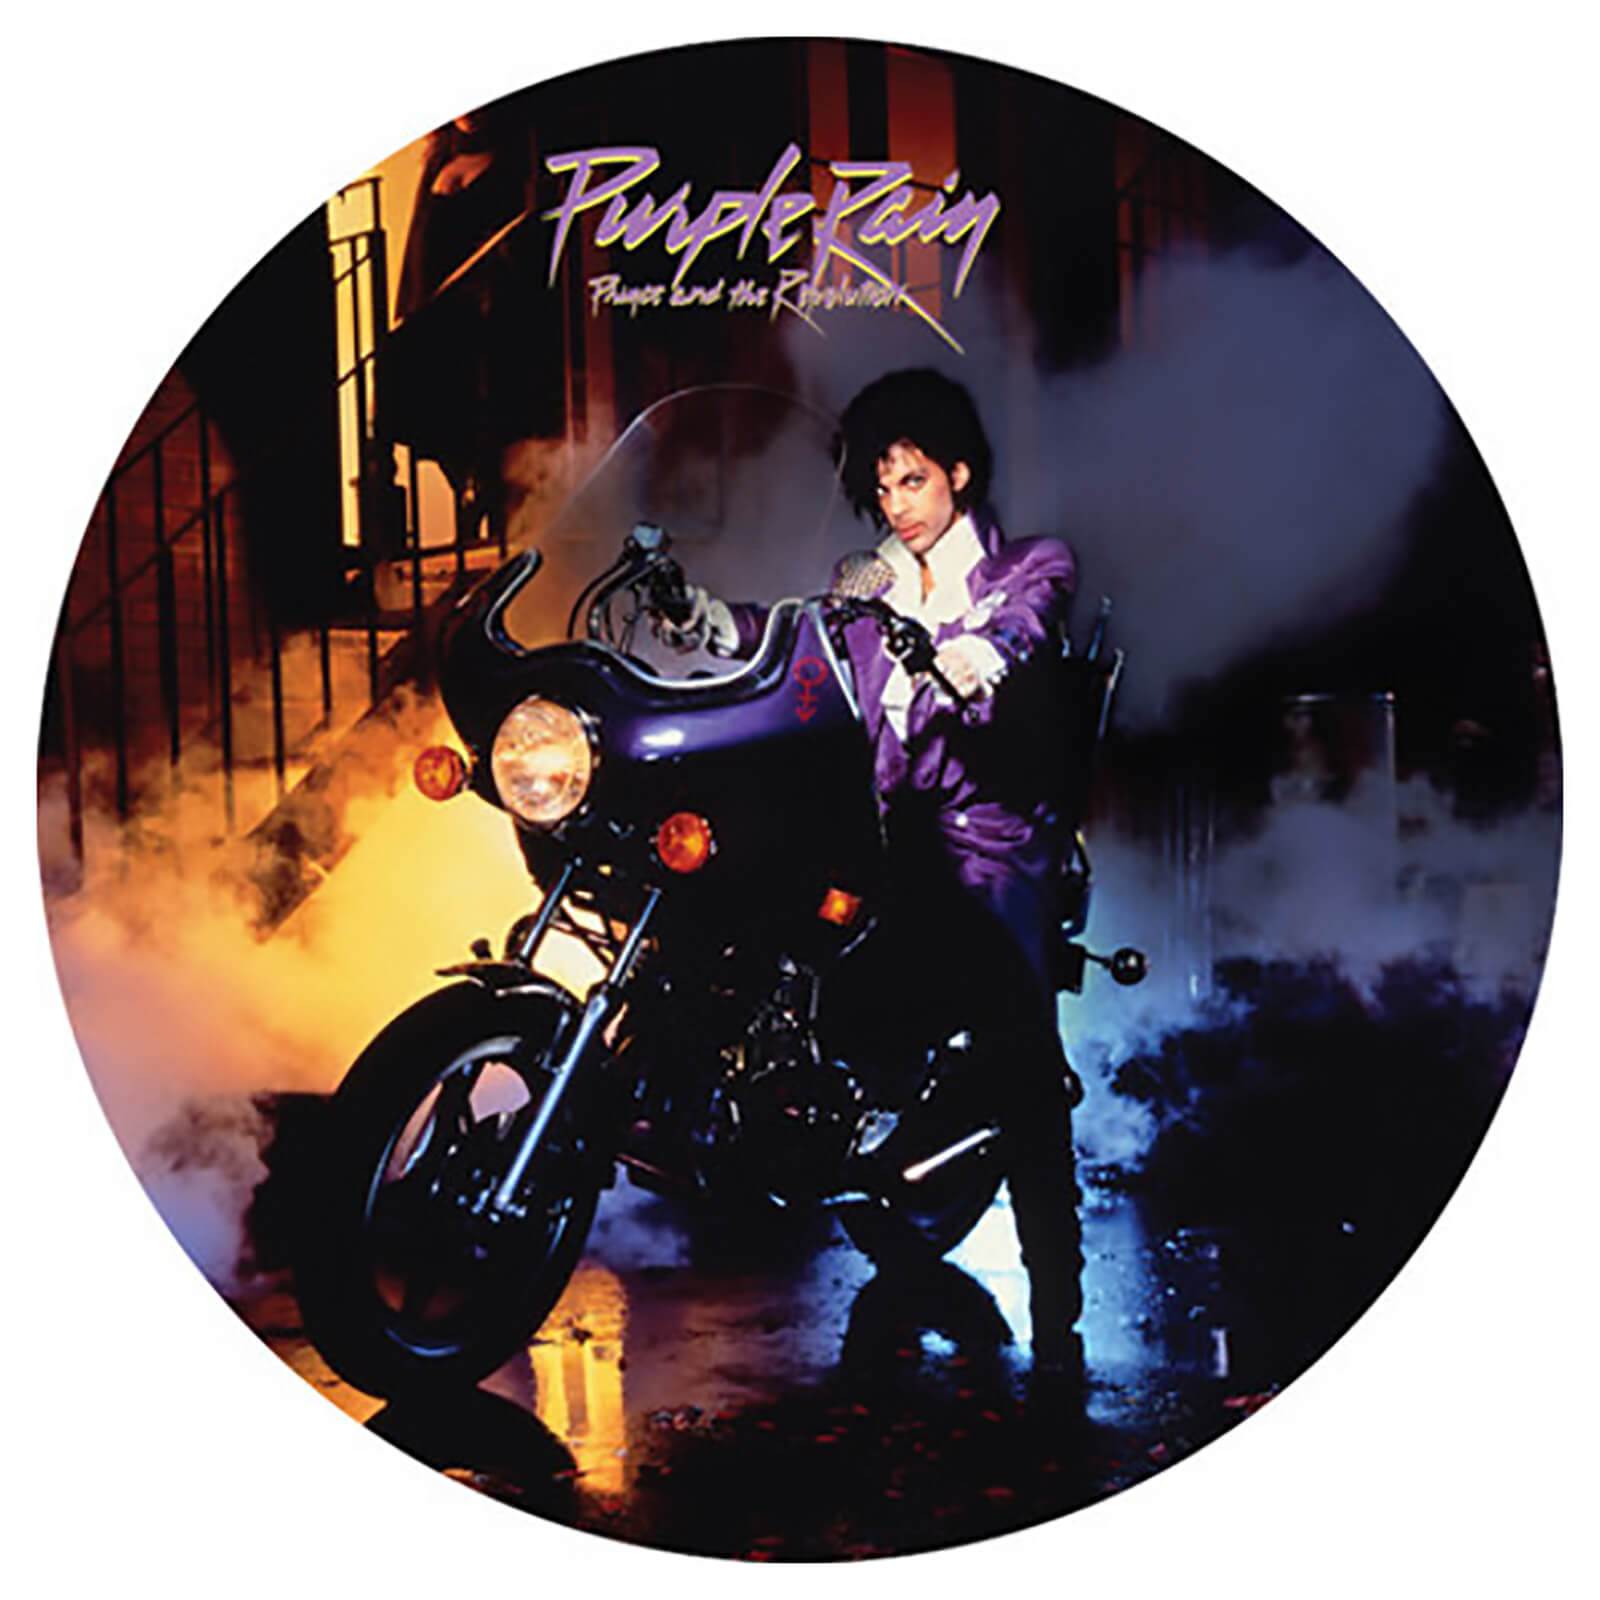 Prince & The Revolution - Purple Rain (Picture Disc) - Vinyl